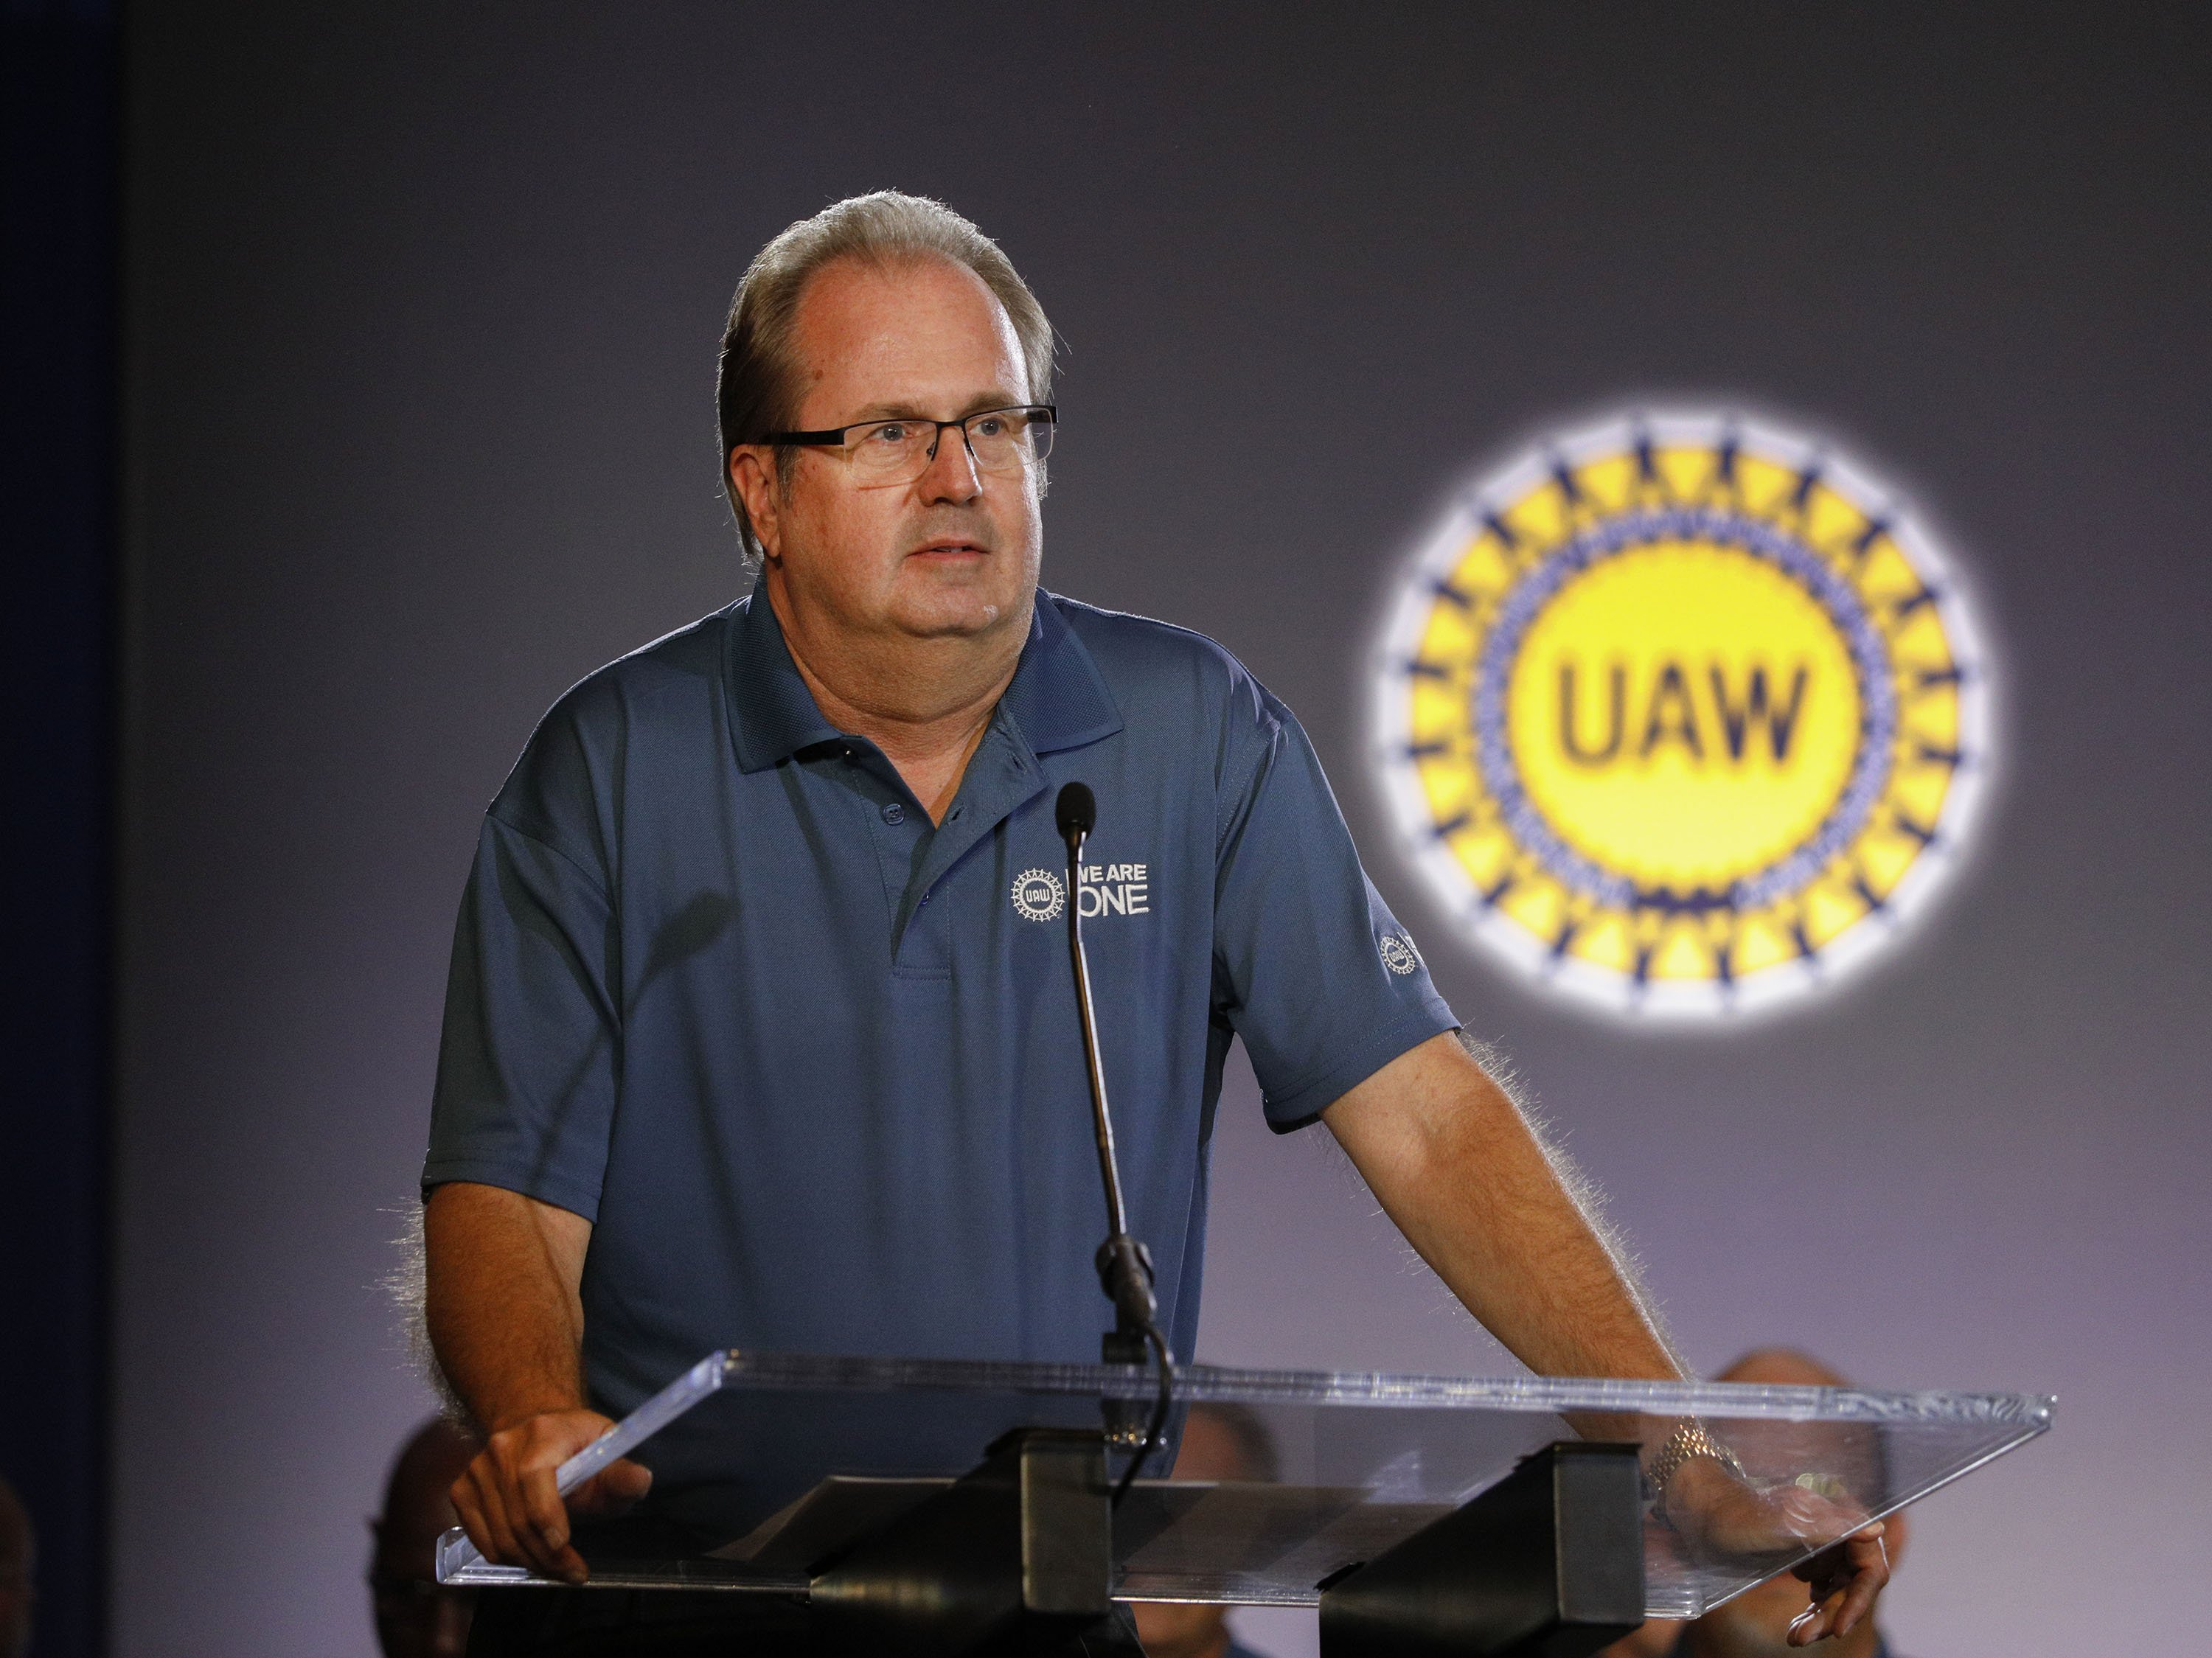 A GM strike could come as early as Sunday. But a union scandal makes negotiations harder